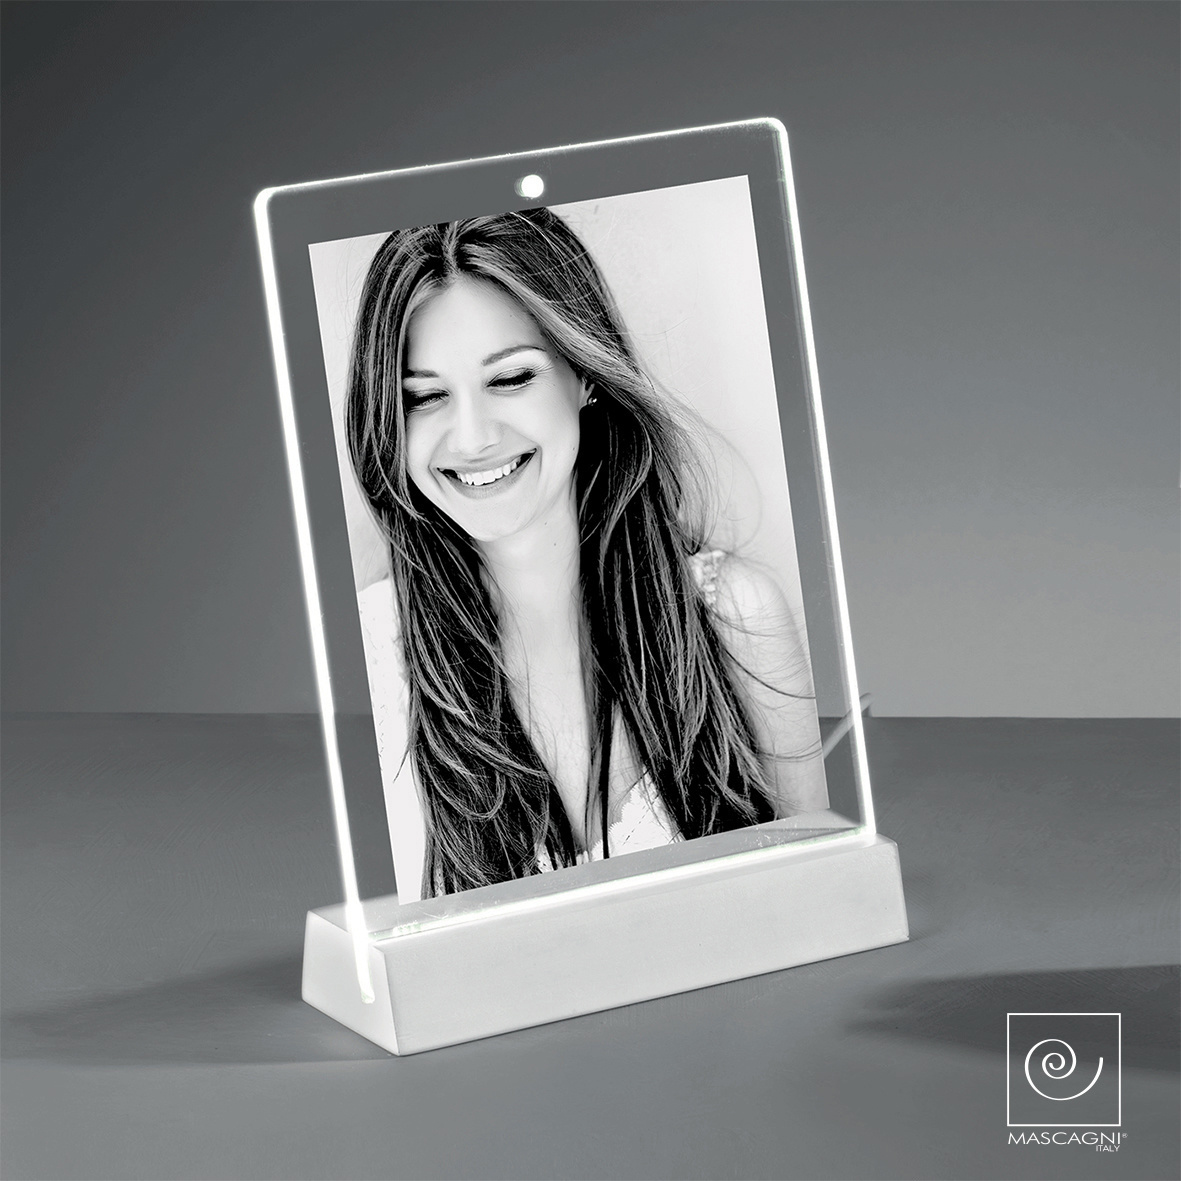 Art Mascagni EDGE PHOTO FRAME LED 13X18 - COL.WHITE